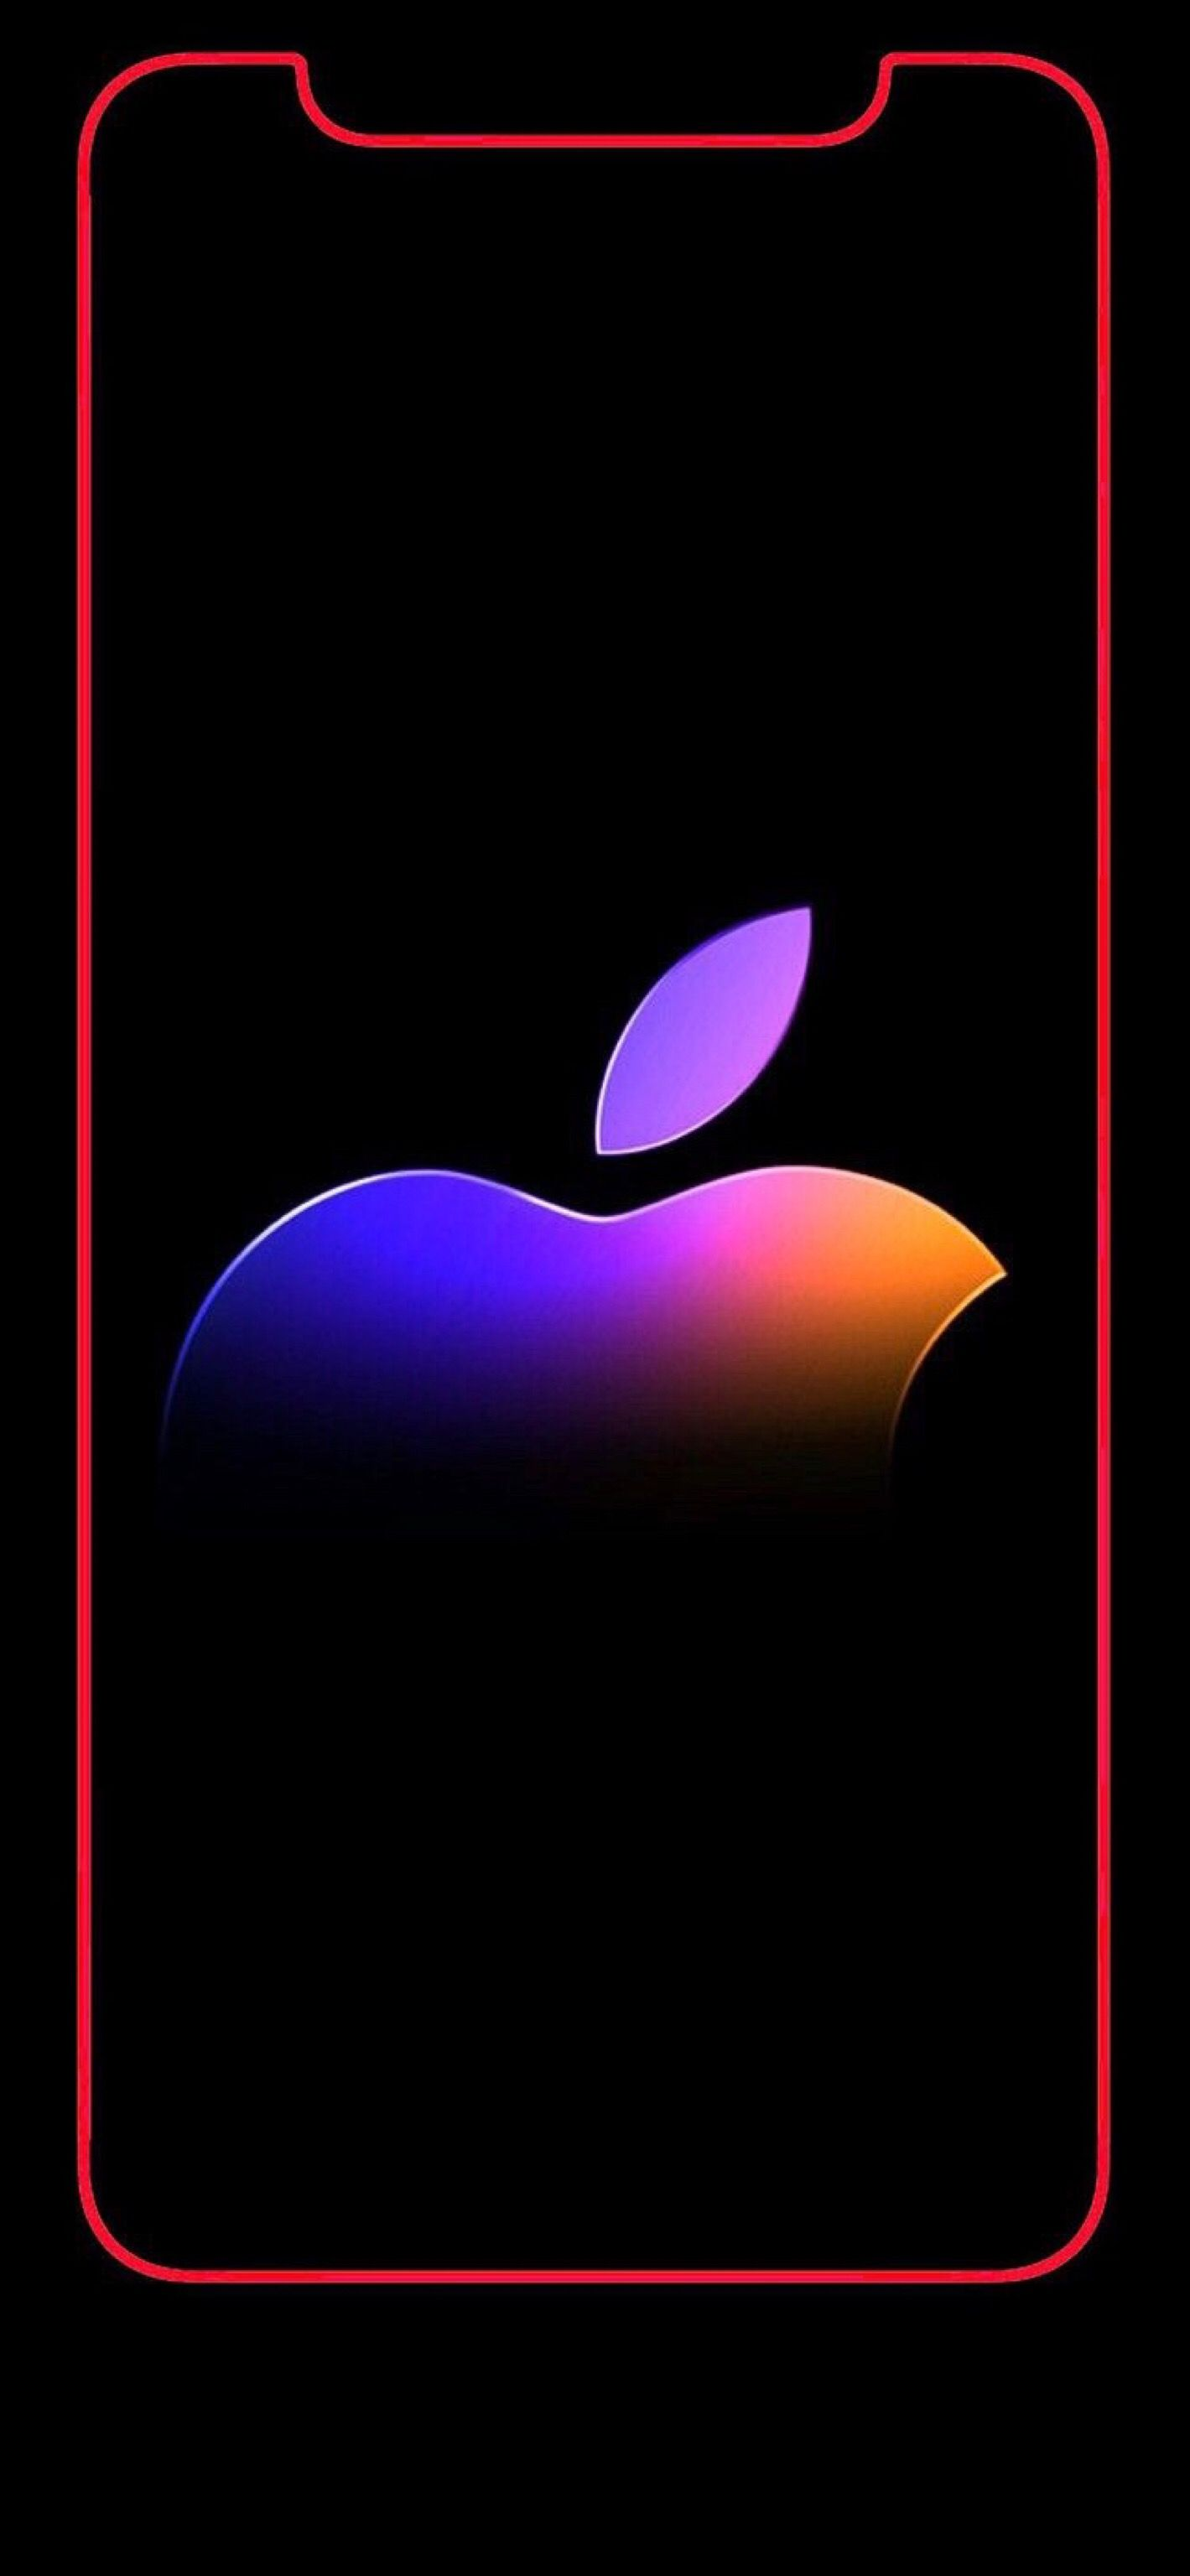 Wallpaper iPhone X Apple logo rainbow 4 Apple logo